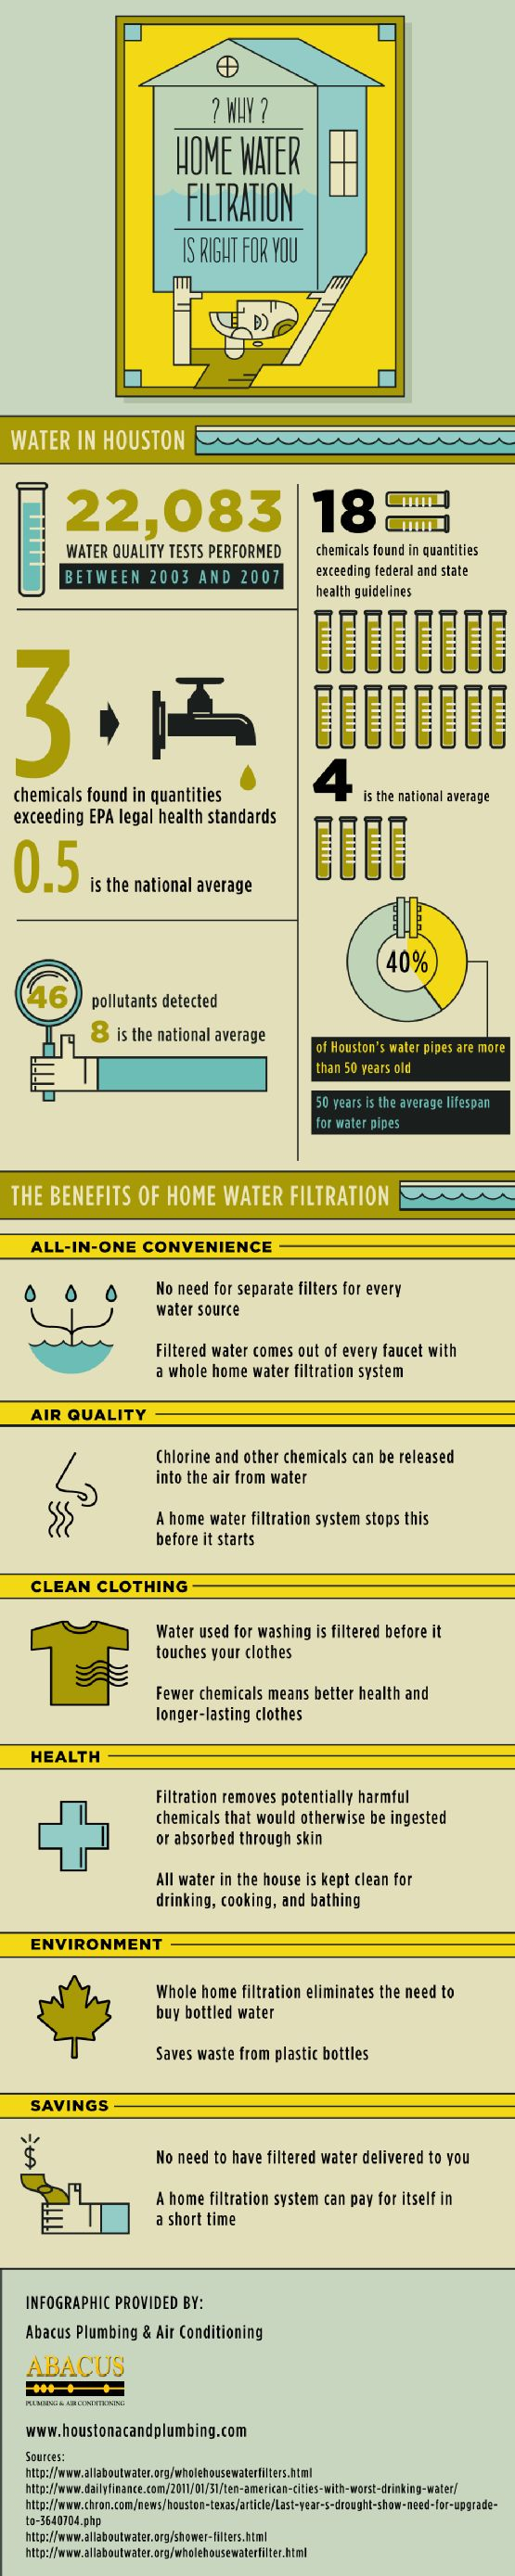 why-home-water-filtration-is-right-for-you-infographic